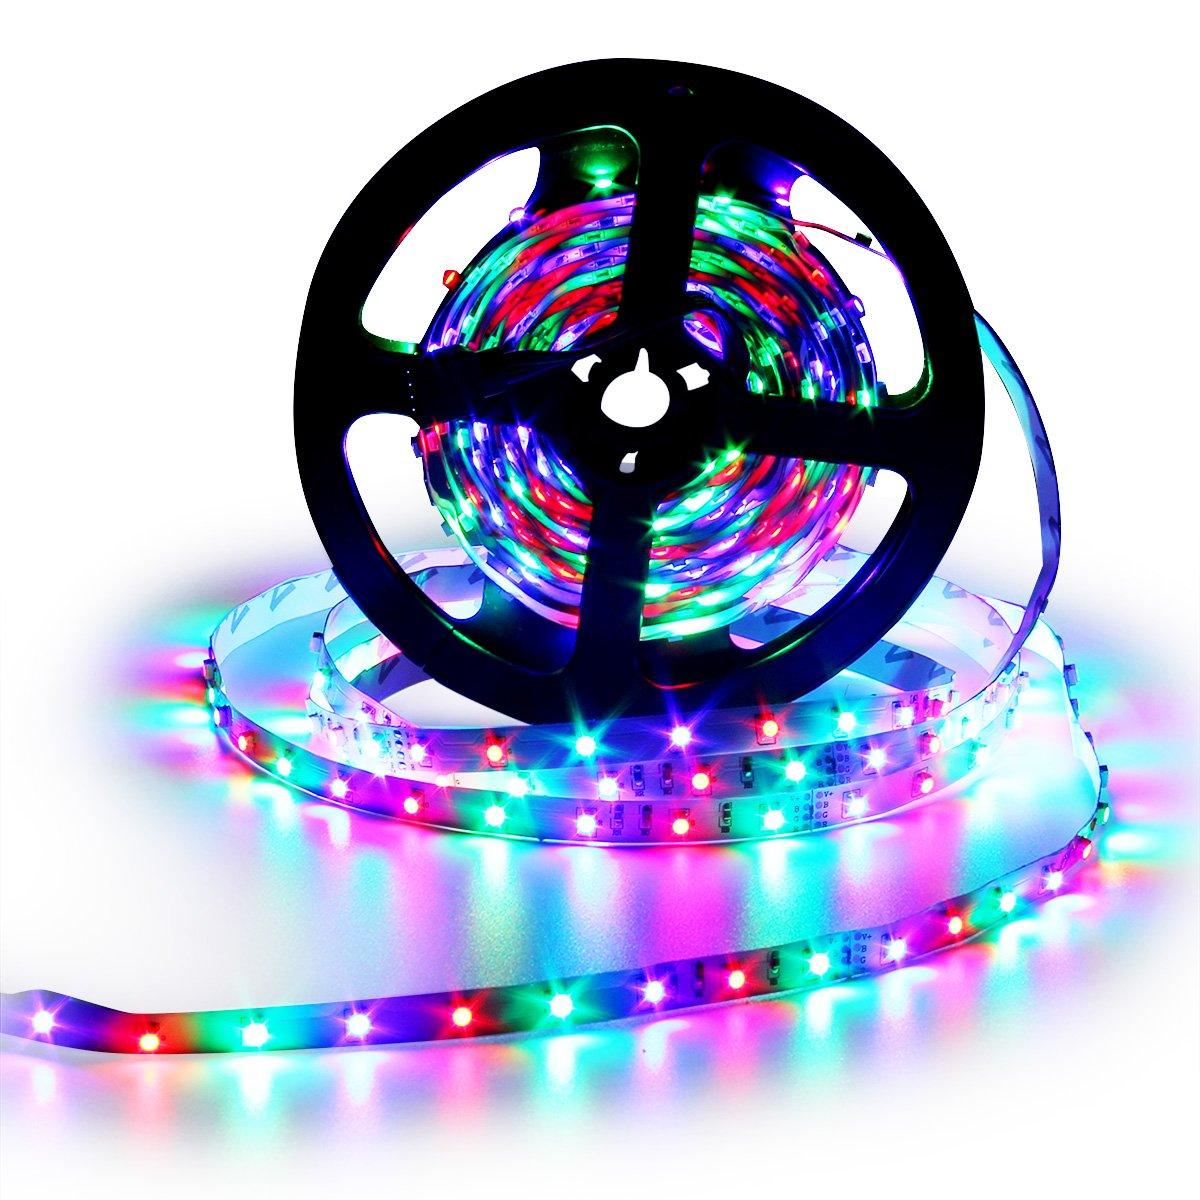 SUPERNIGHT 5M/16.4 Ft SMD 3528 RGB 300 LED Color Changing Kit with Flexible Strip Light+44 Key IR Remote Control+ Power Supply by SUPERNIGHT (Image #2)